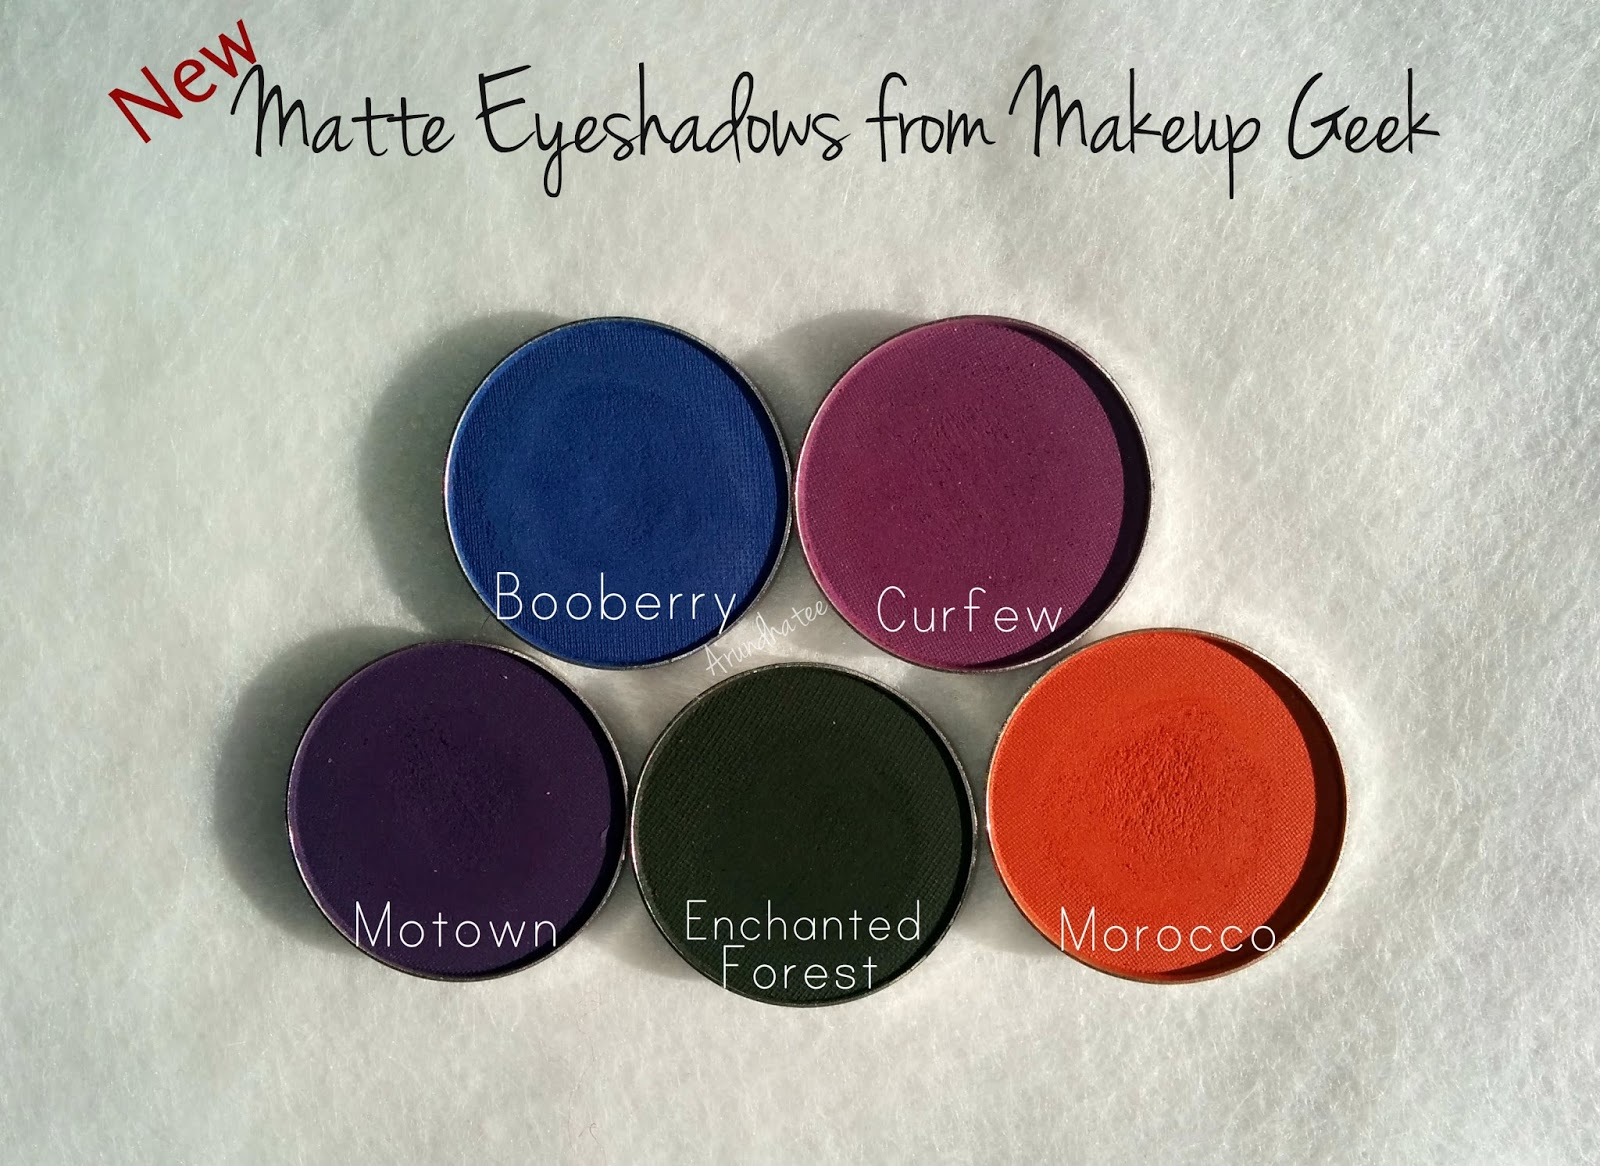 Makeup Geek New Matte Eyeshadows : Review and Swatches!!!